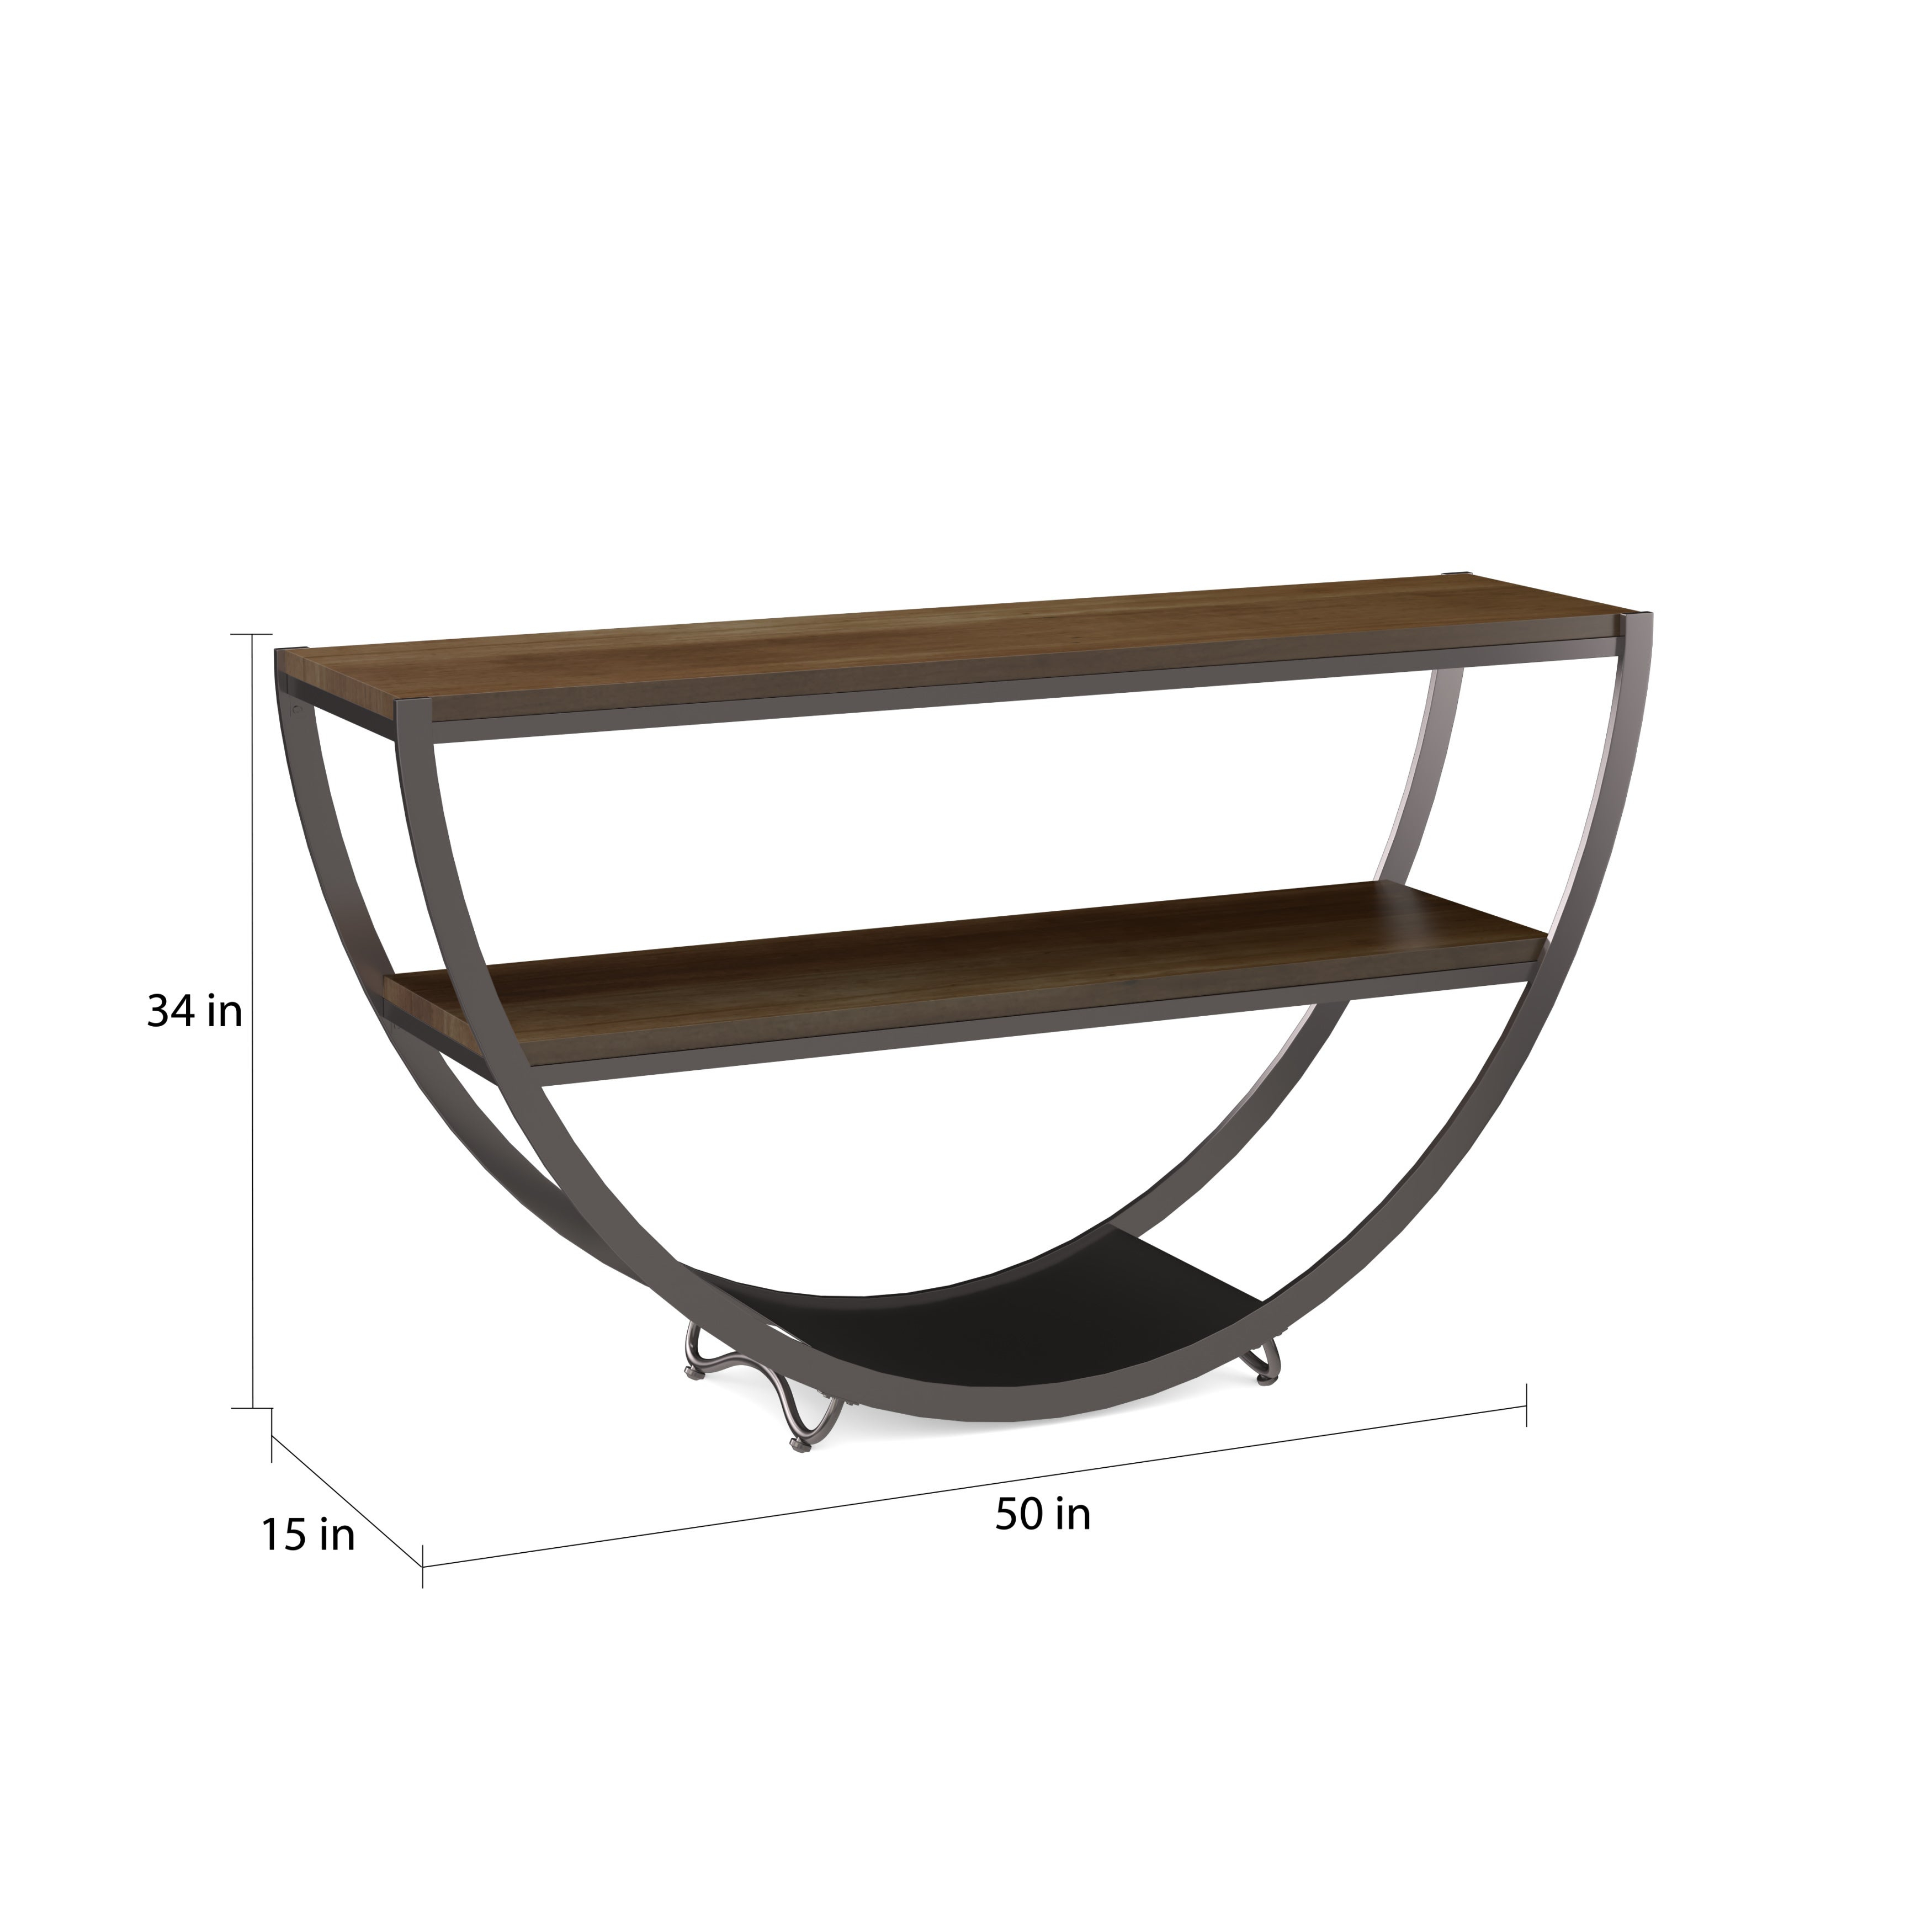 Carbon Loft Cohn Vintage Industrial Console Table In 2018 Presson 3 Piece Counter Height Dining Sets (View 12 of 20)